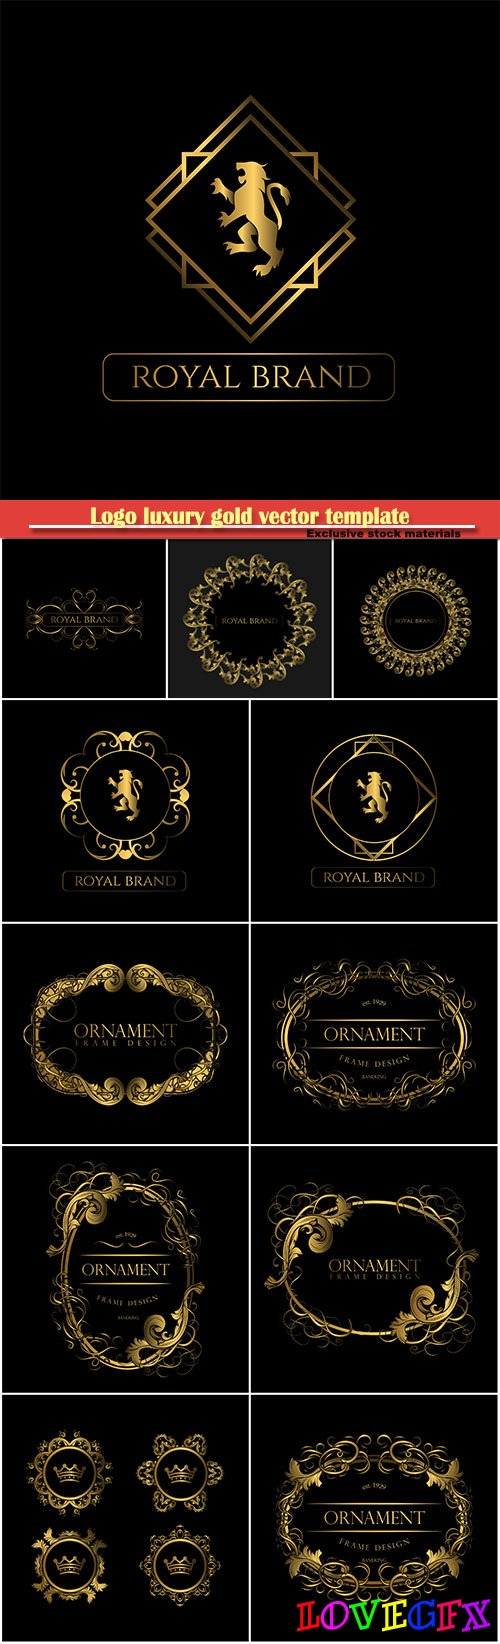 Logo luxury gold vector template